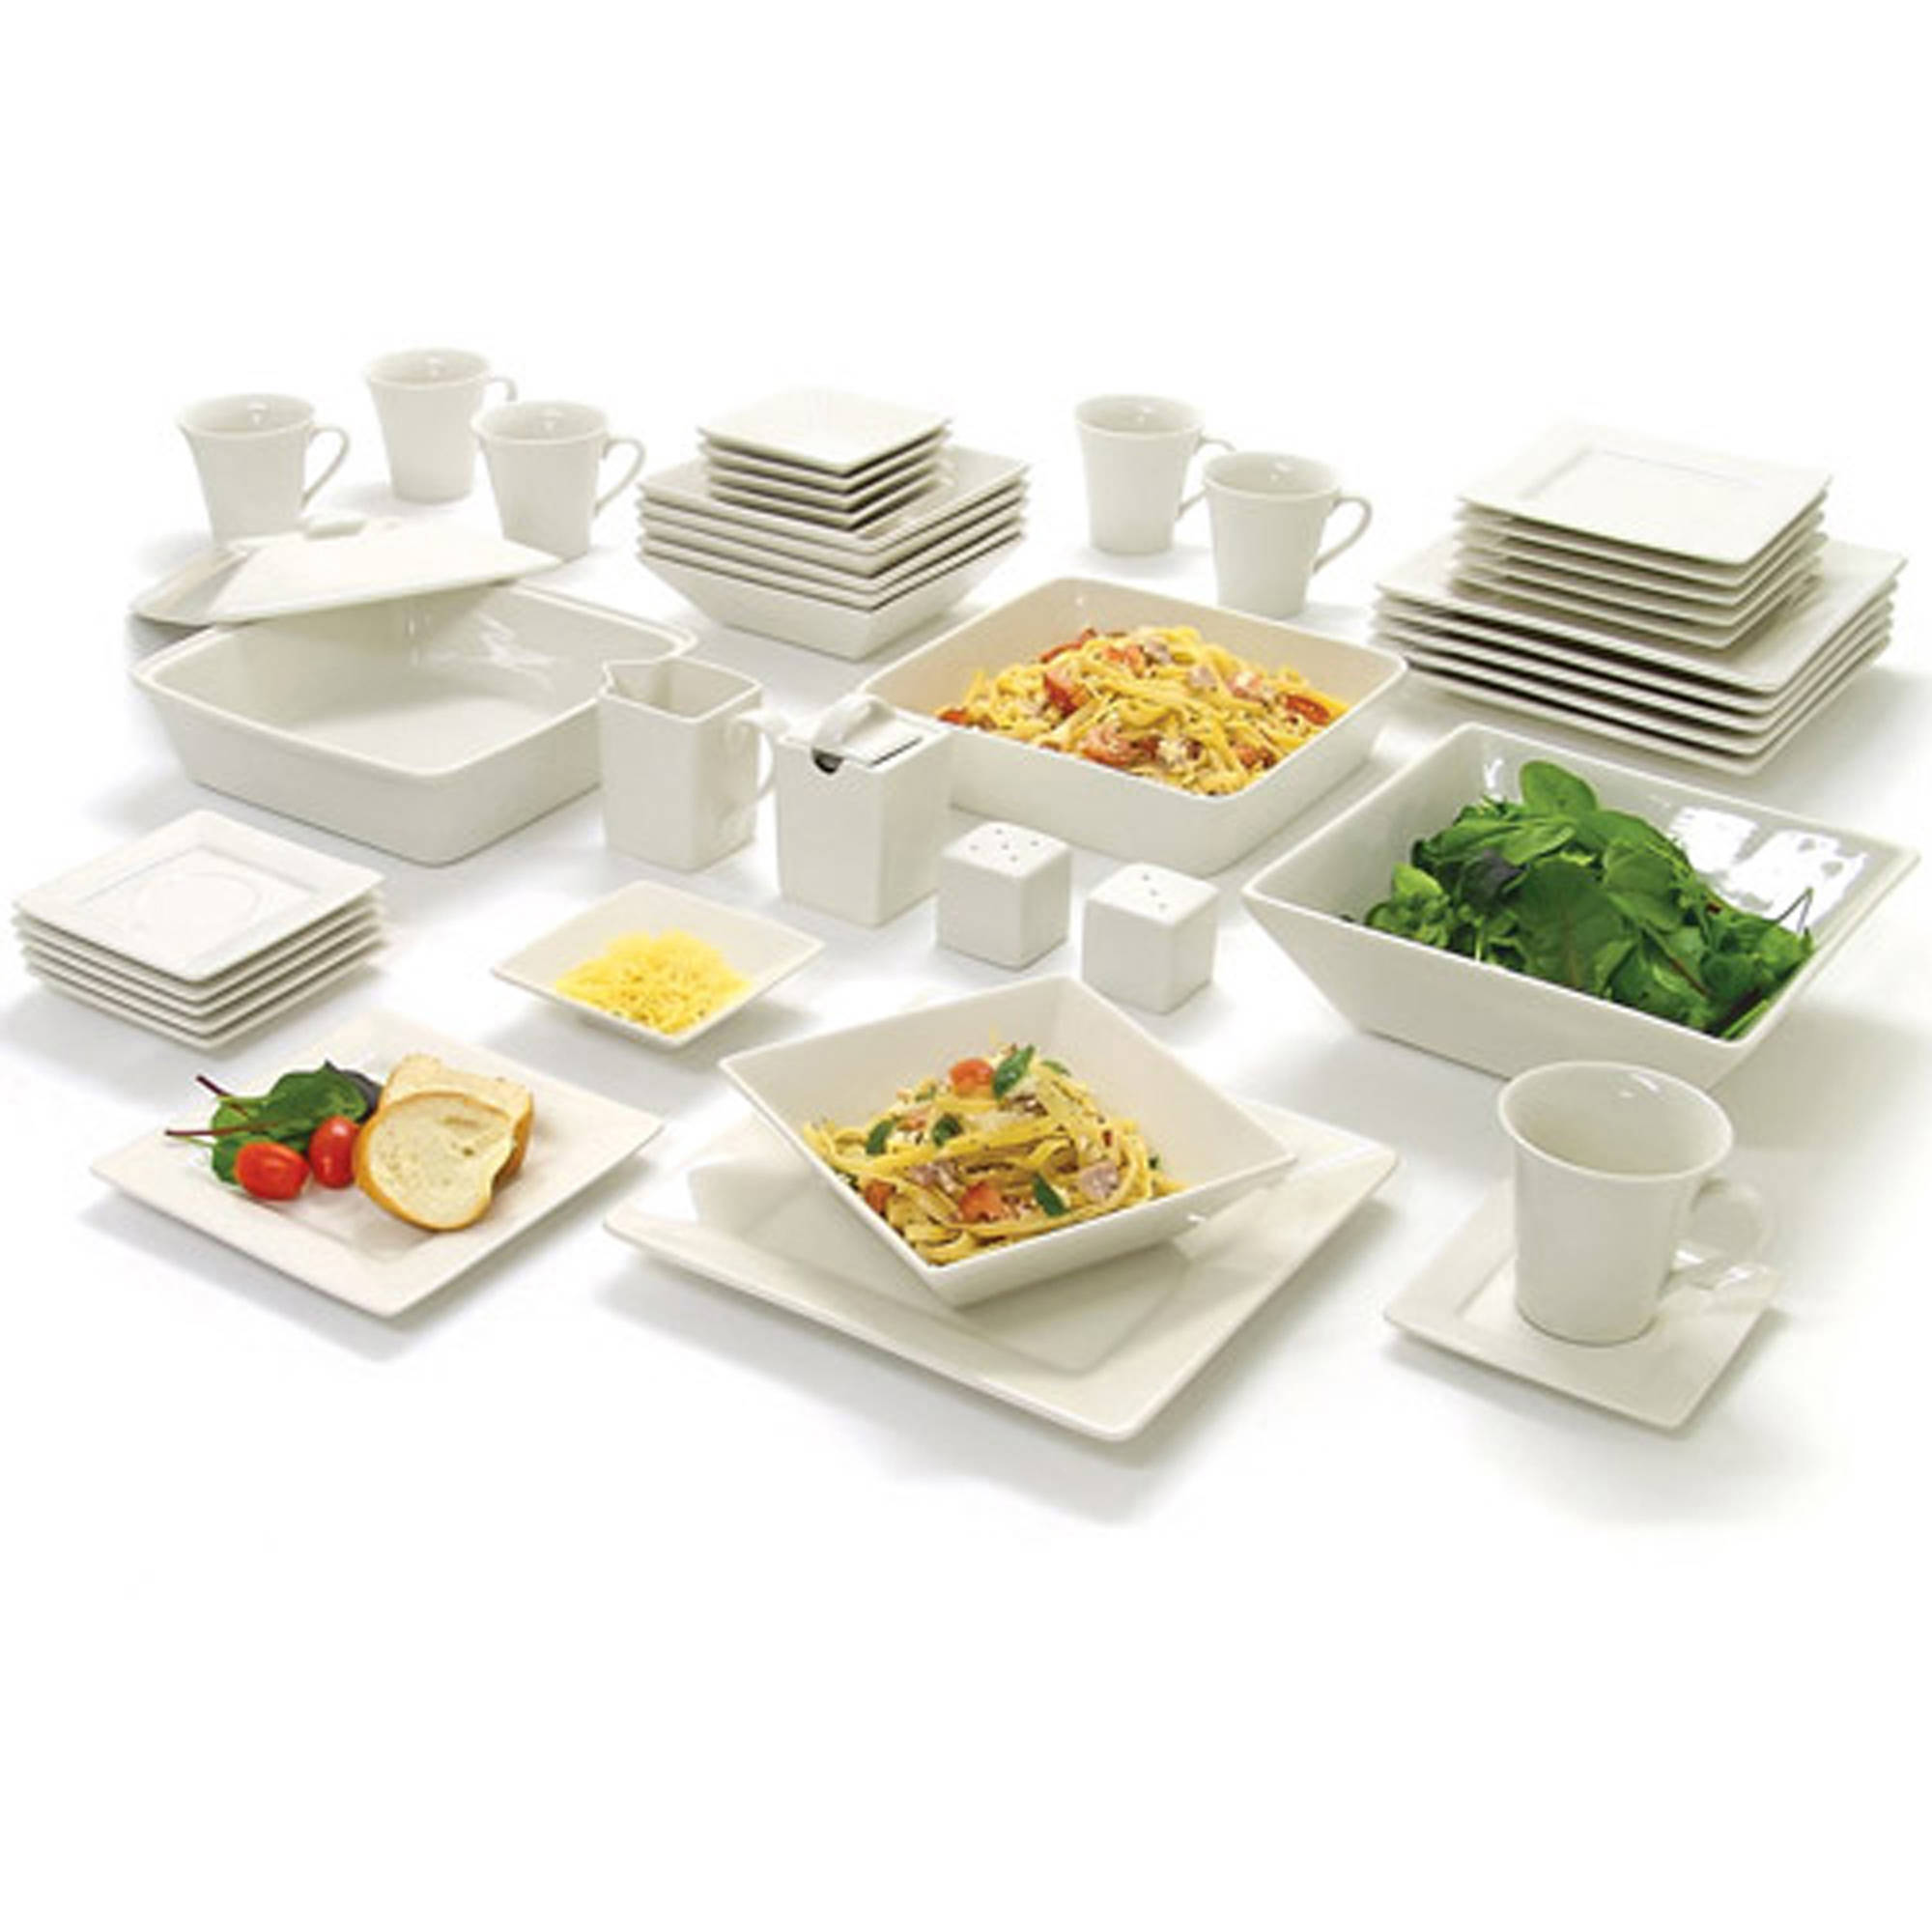 Dinnerware Set Porcelain Plates Bowls Square Banquet Dishwasher Safe 45 Piece 725175921072 | eBay  sc 1 st  eBay & Dinnerware Set Porcelain Plates Bowls Square Banquet Dishwasher Safe ...